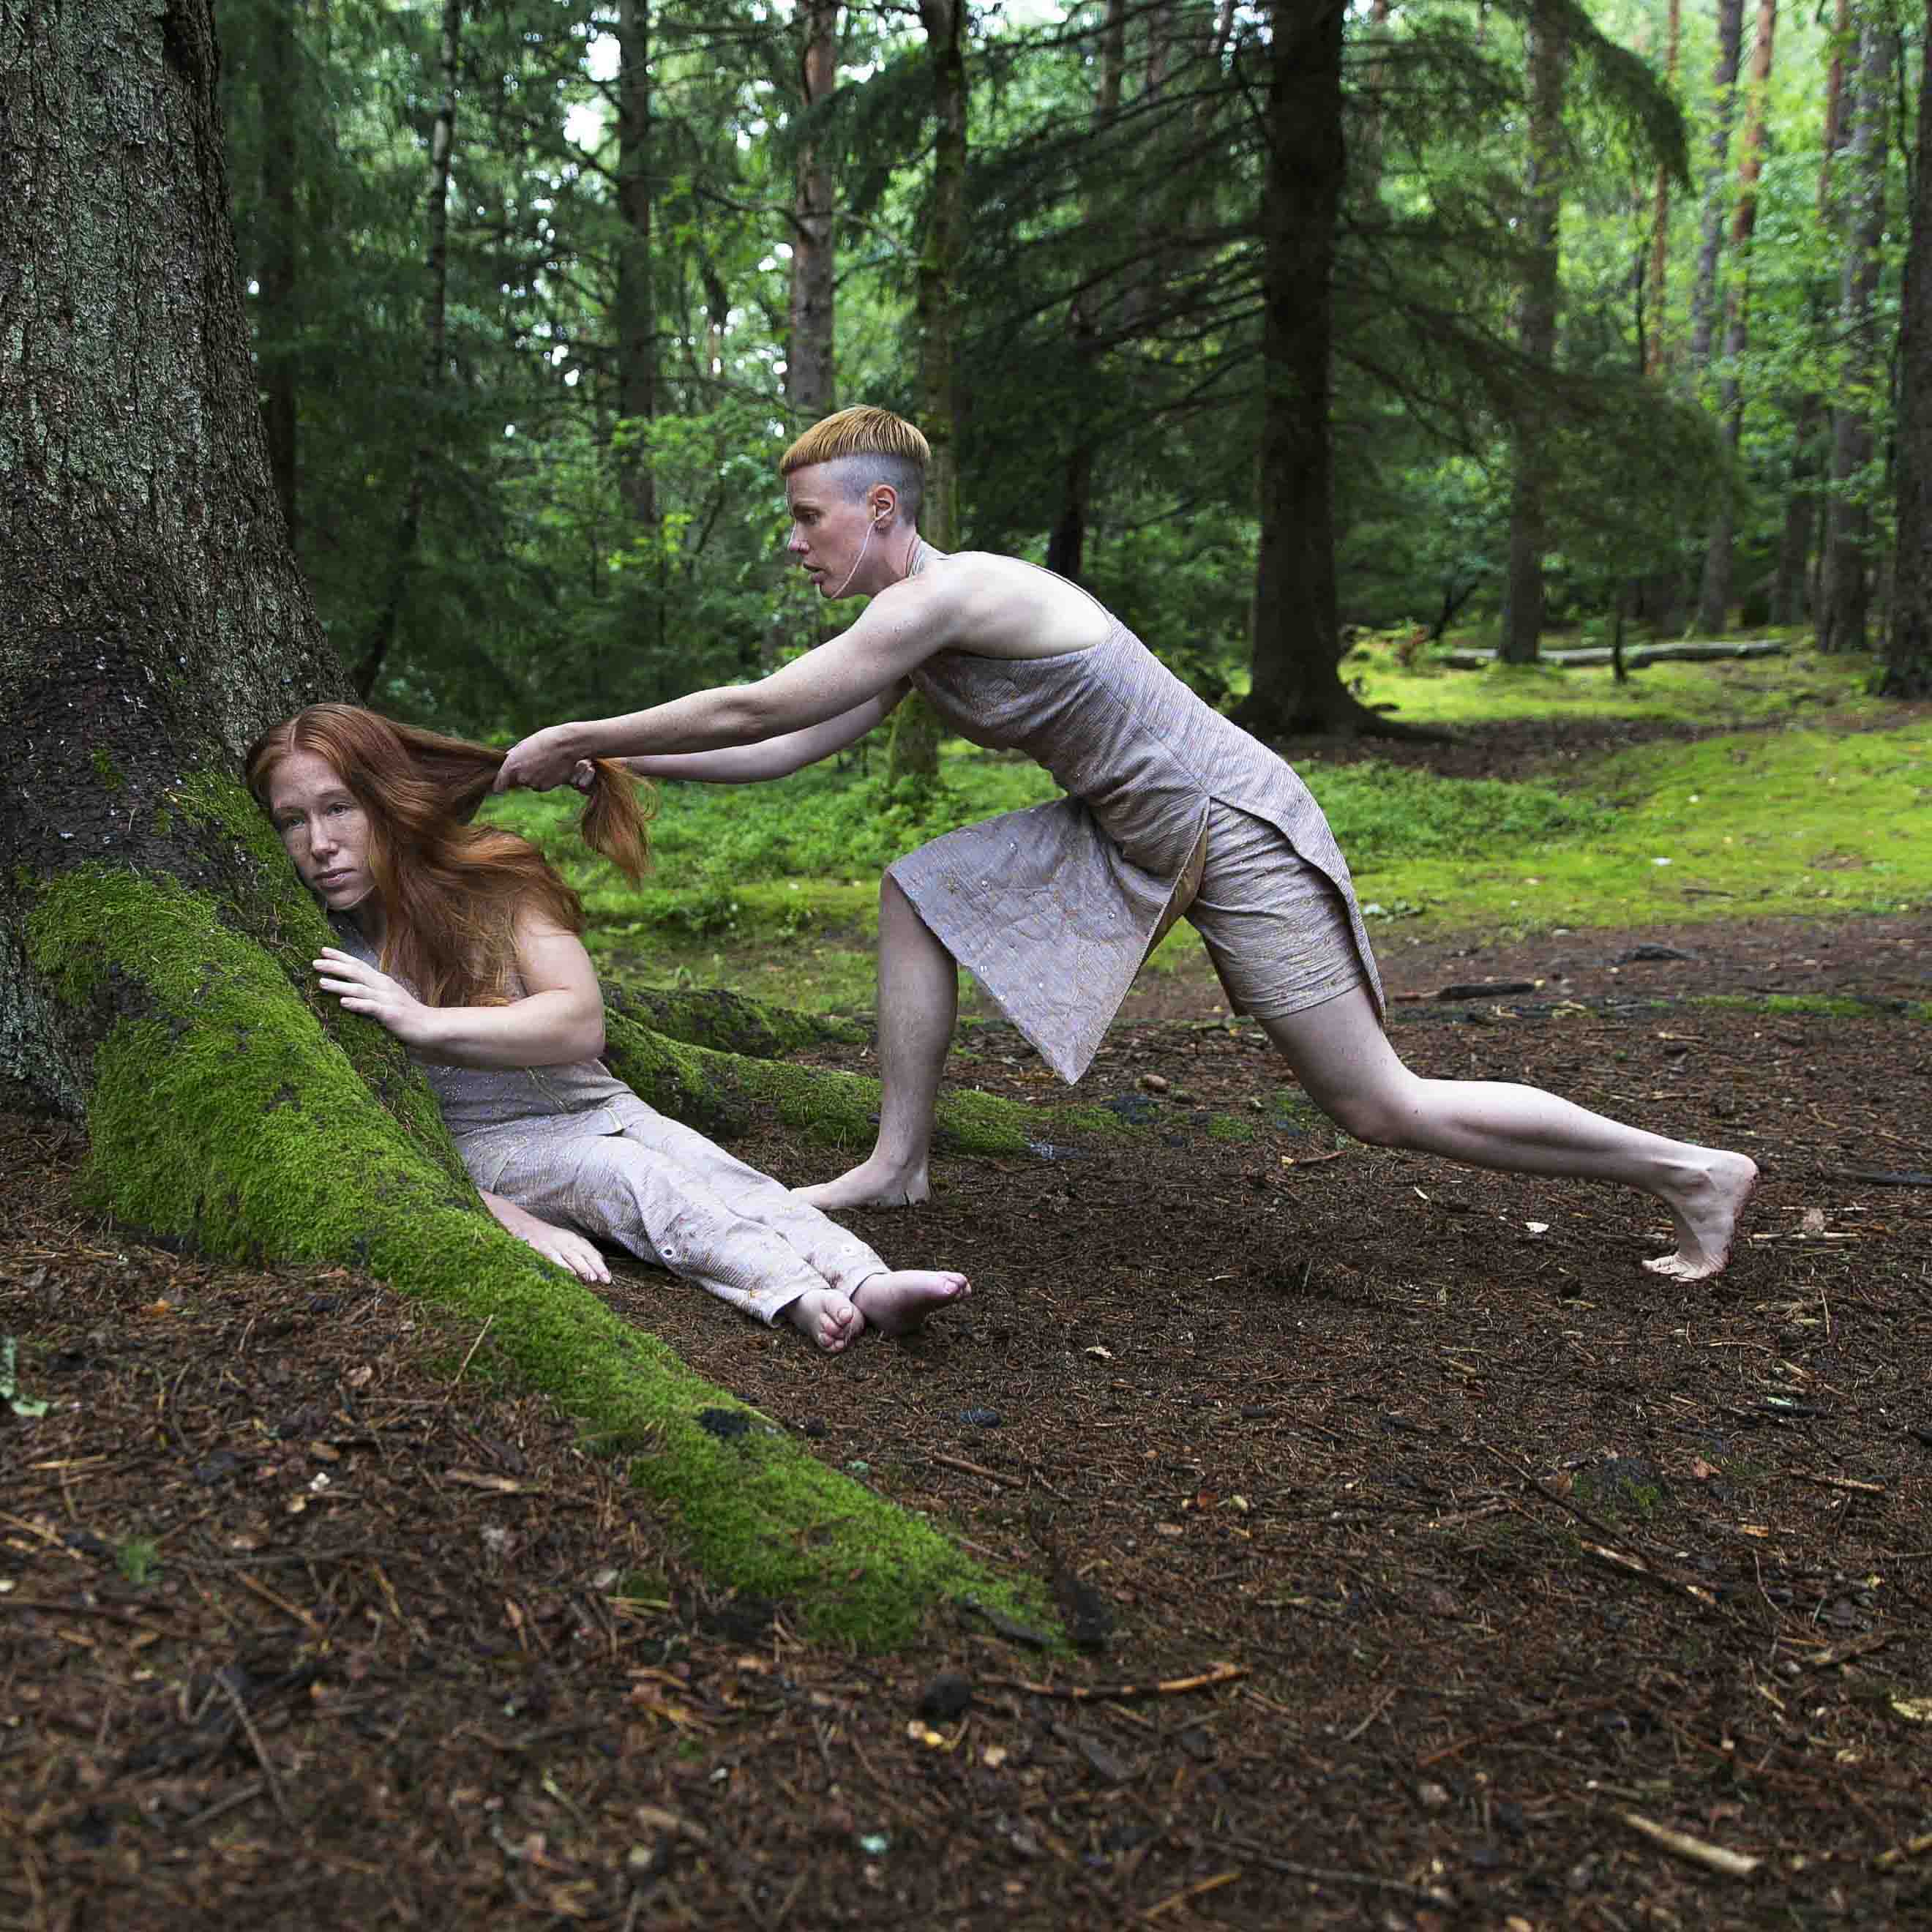 Image for the performance Hannah Felicia. The image depicts Felicia sitting leaning towards a tree in a fir forest, gazing far-off to the left, while Hannah stands in profile with her left leg vigorously arched backwards, looking directly at Felicia while pulling her hair. Photo: Anna Ósk Erlingsdóttir